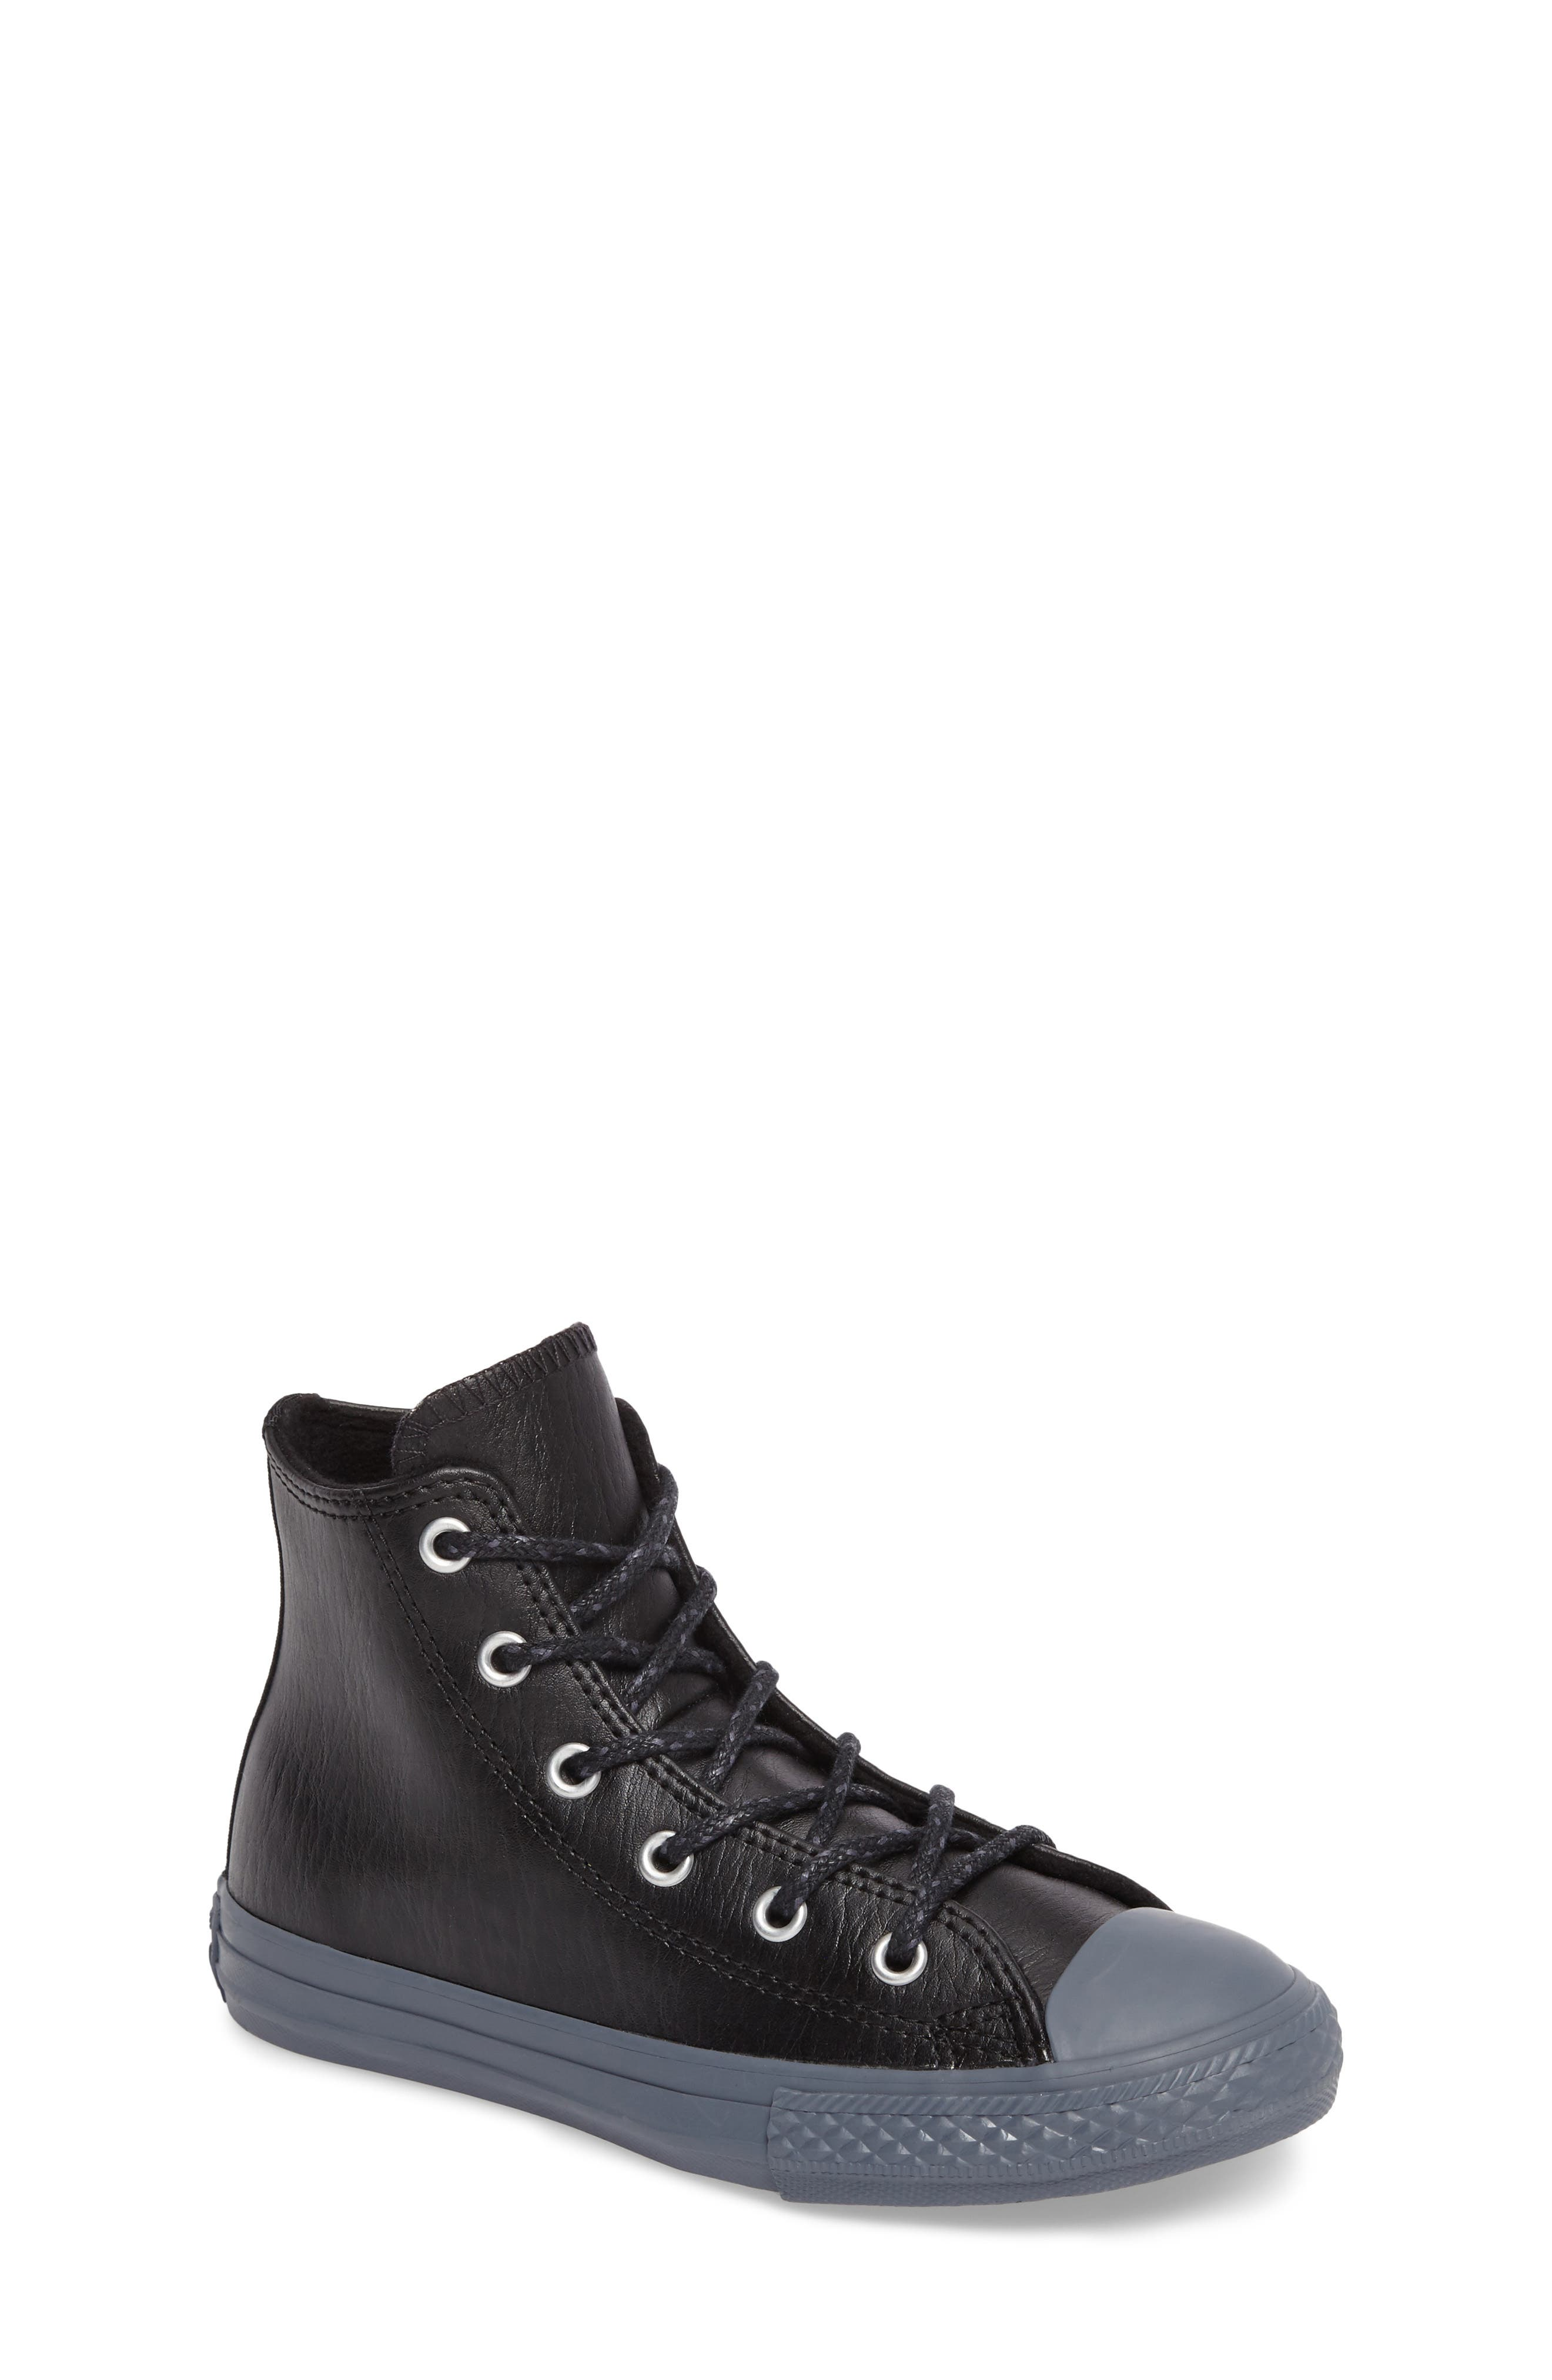 Chuck Taylor<sup>®</sup> All Star<sup>®</sup> Leather High Top Sneaker,                         Main,                         color, 001